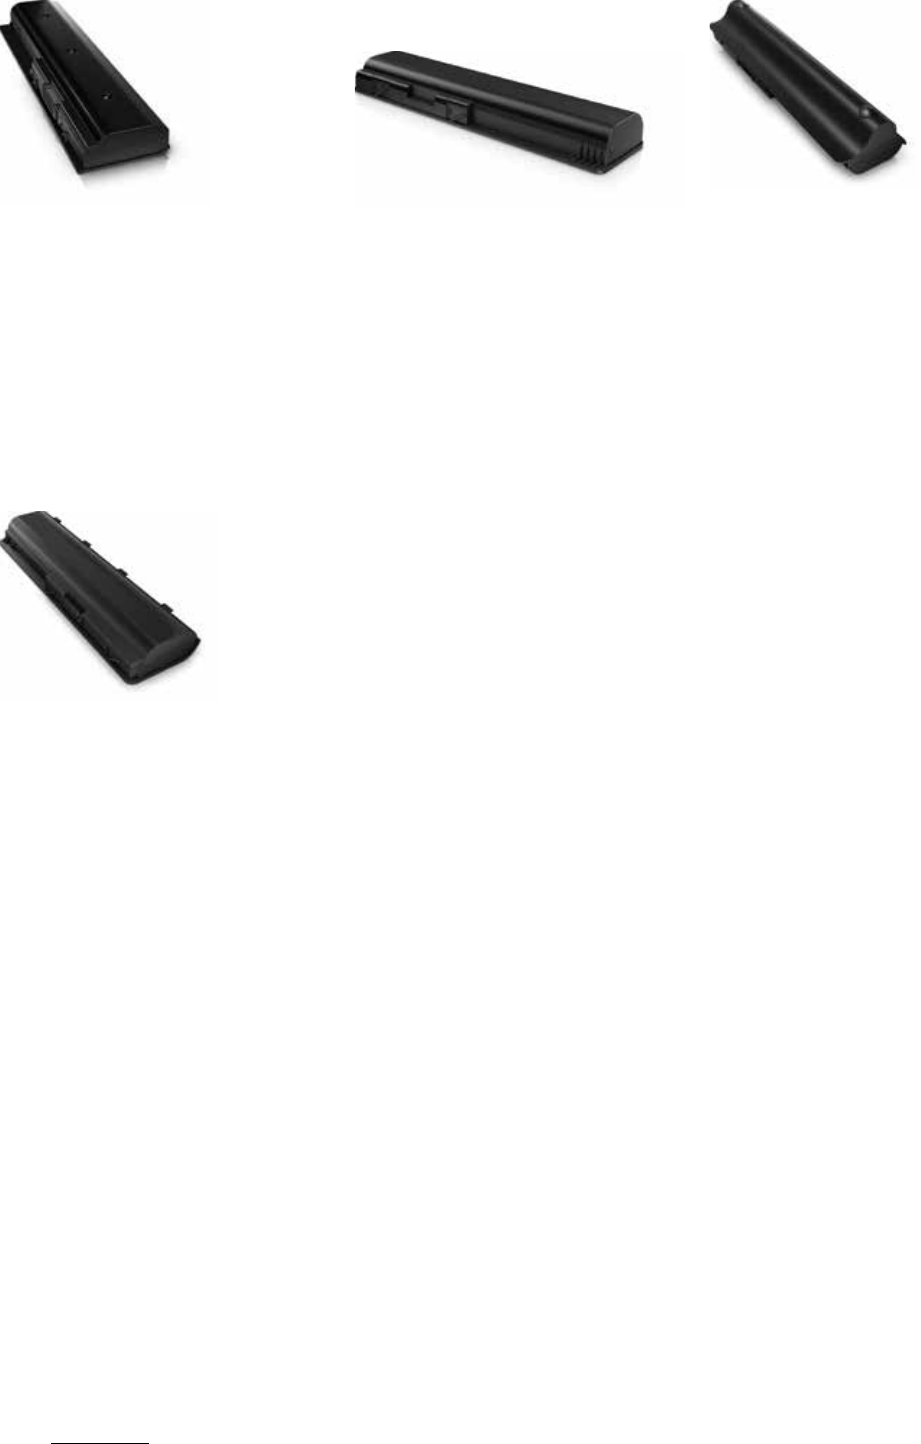 Color : Grey Grey ONEMO 2.4G USB Receiver Adjustable 1600 DPI Wireless Optical Pen Mouse for Computer PC Laptop Drawing Teaching